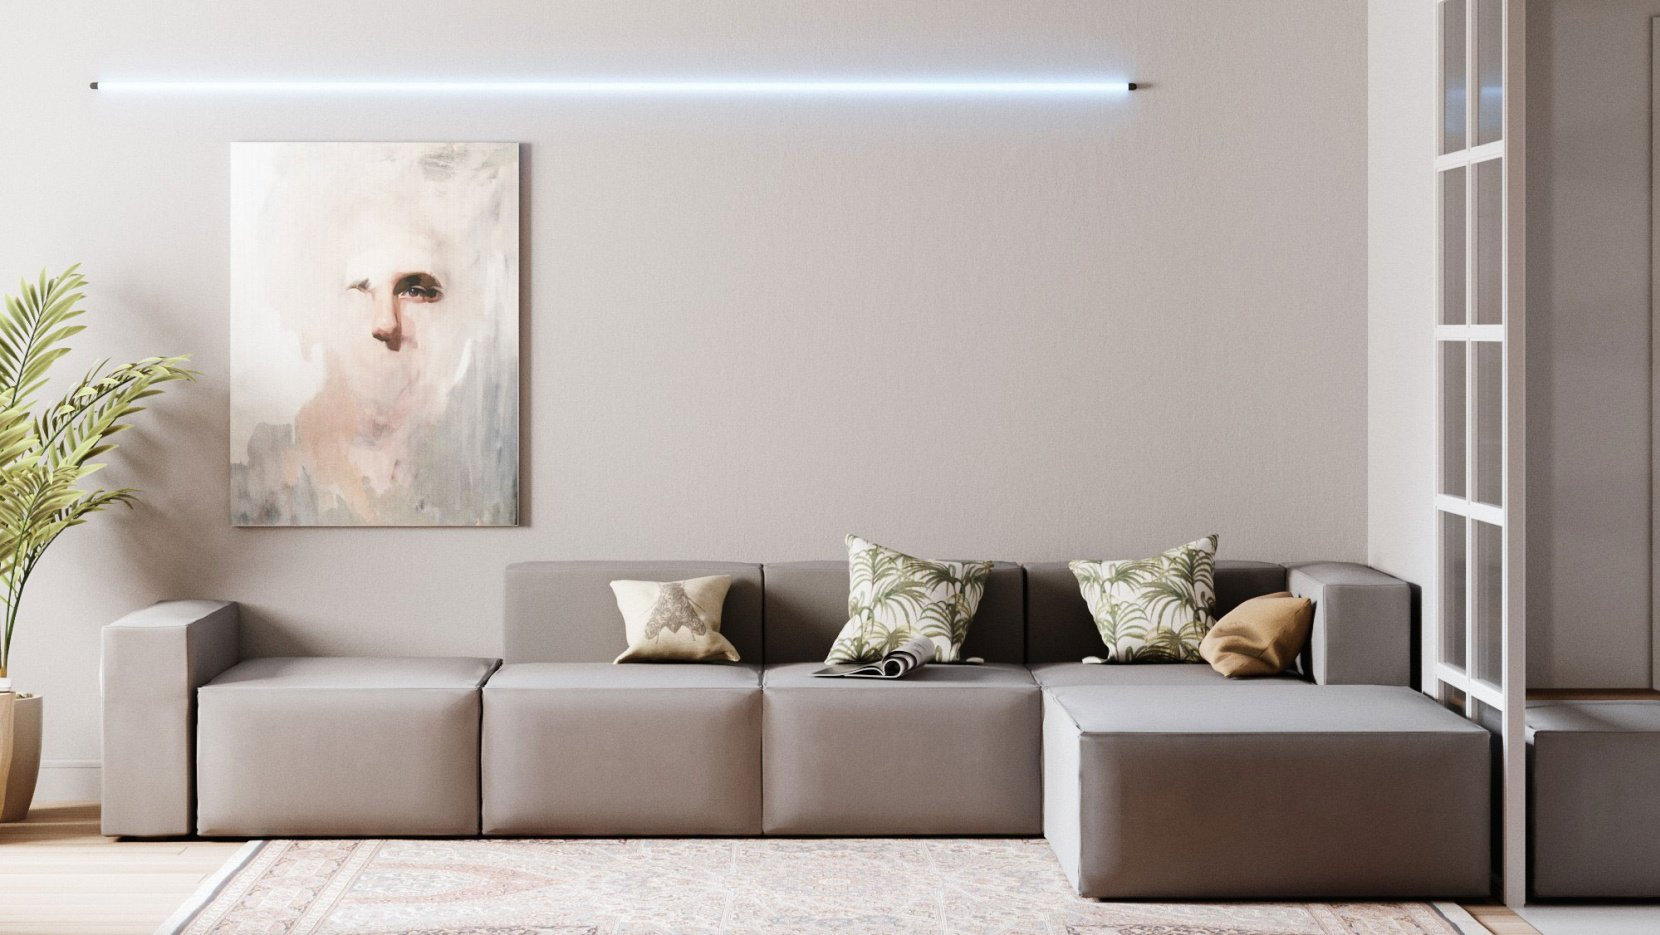 Living room with cuboid sofa sectional and pale gray walls and pale wood flooring with rug.